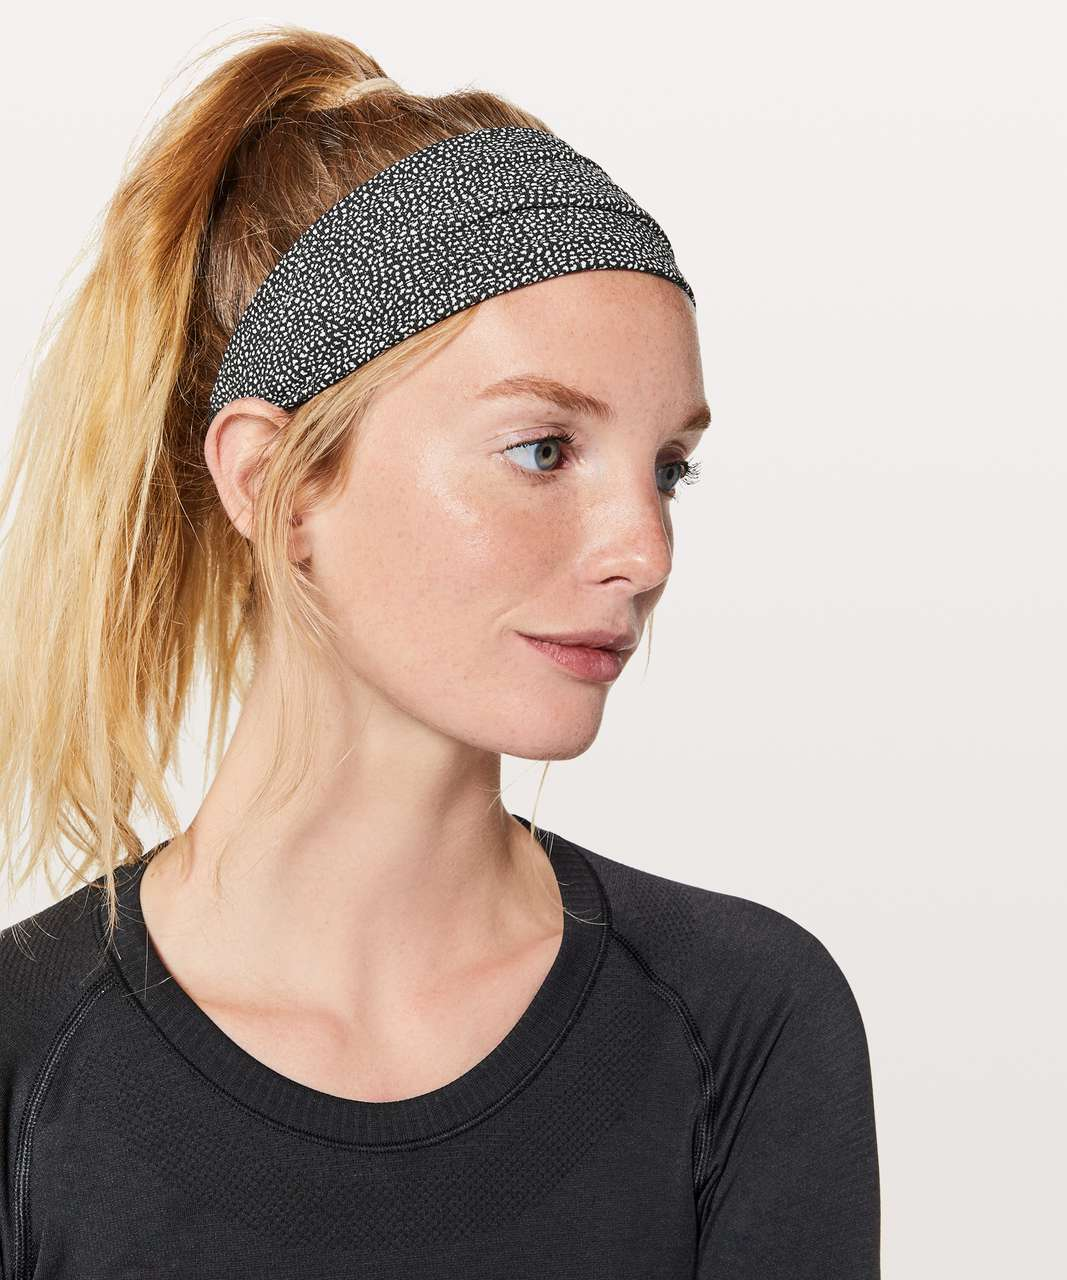 a88eb7267fb Lululemon Fringe Fighter Headband - Chakra Print Alpine White Black /  Heathered Black - lulu fanatics